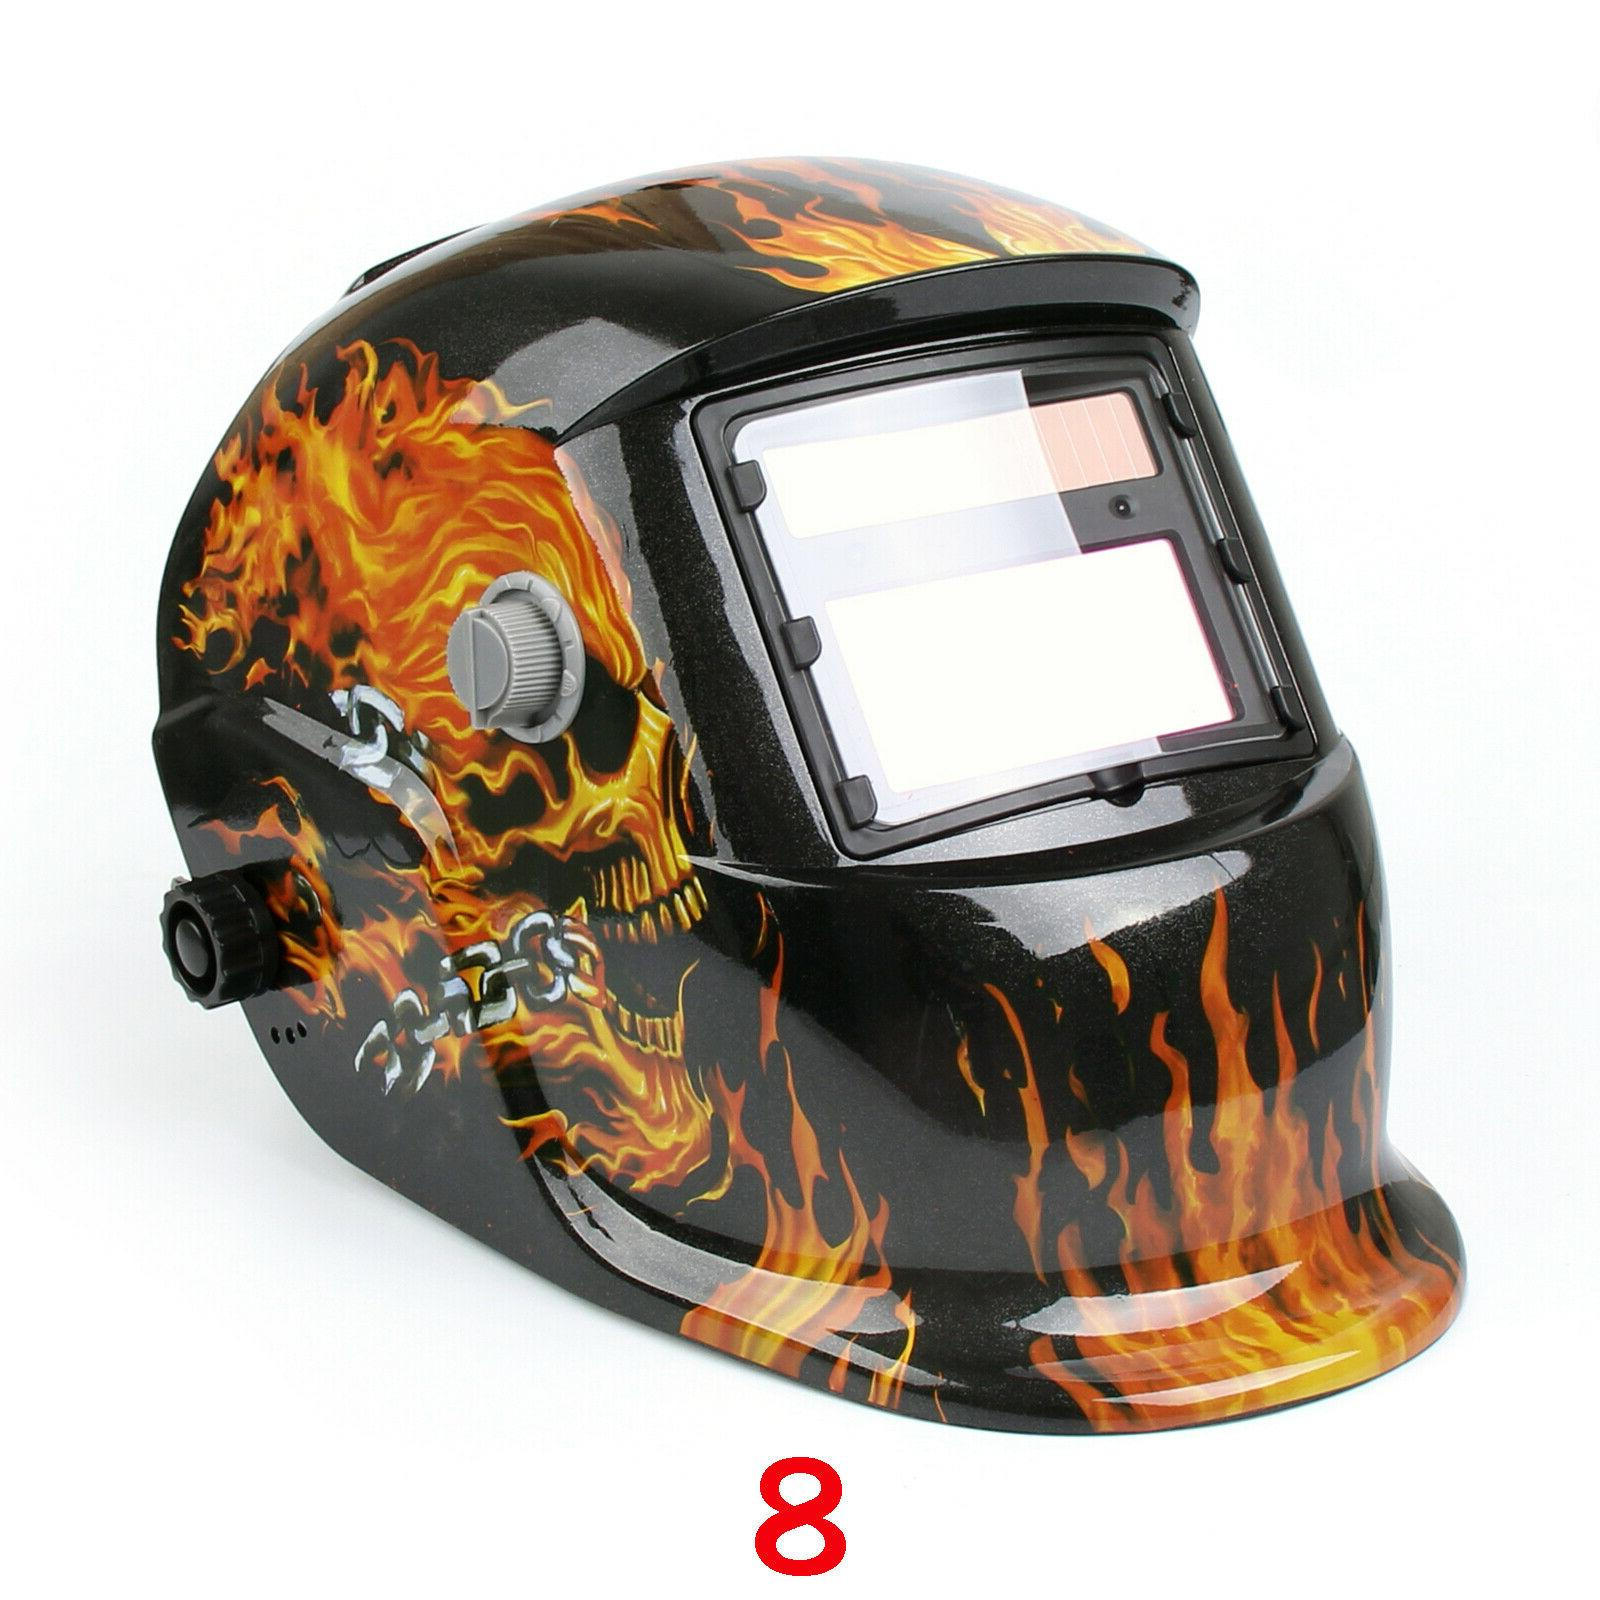 welding mask helmet auto darkening solar powered